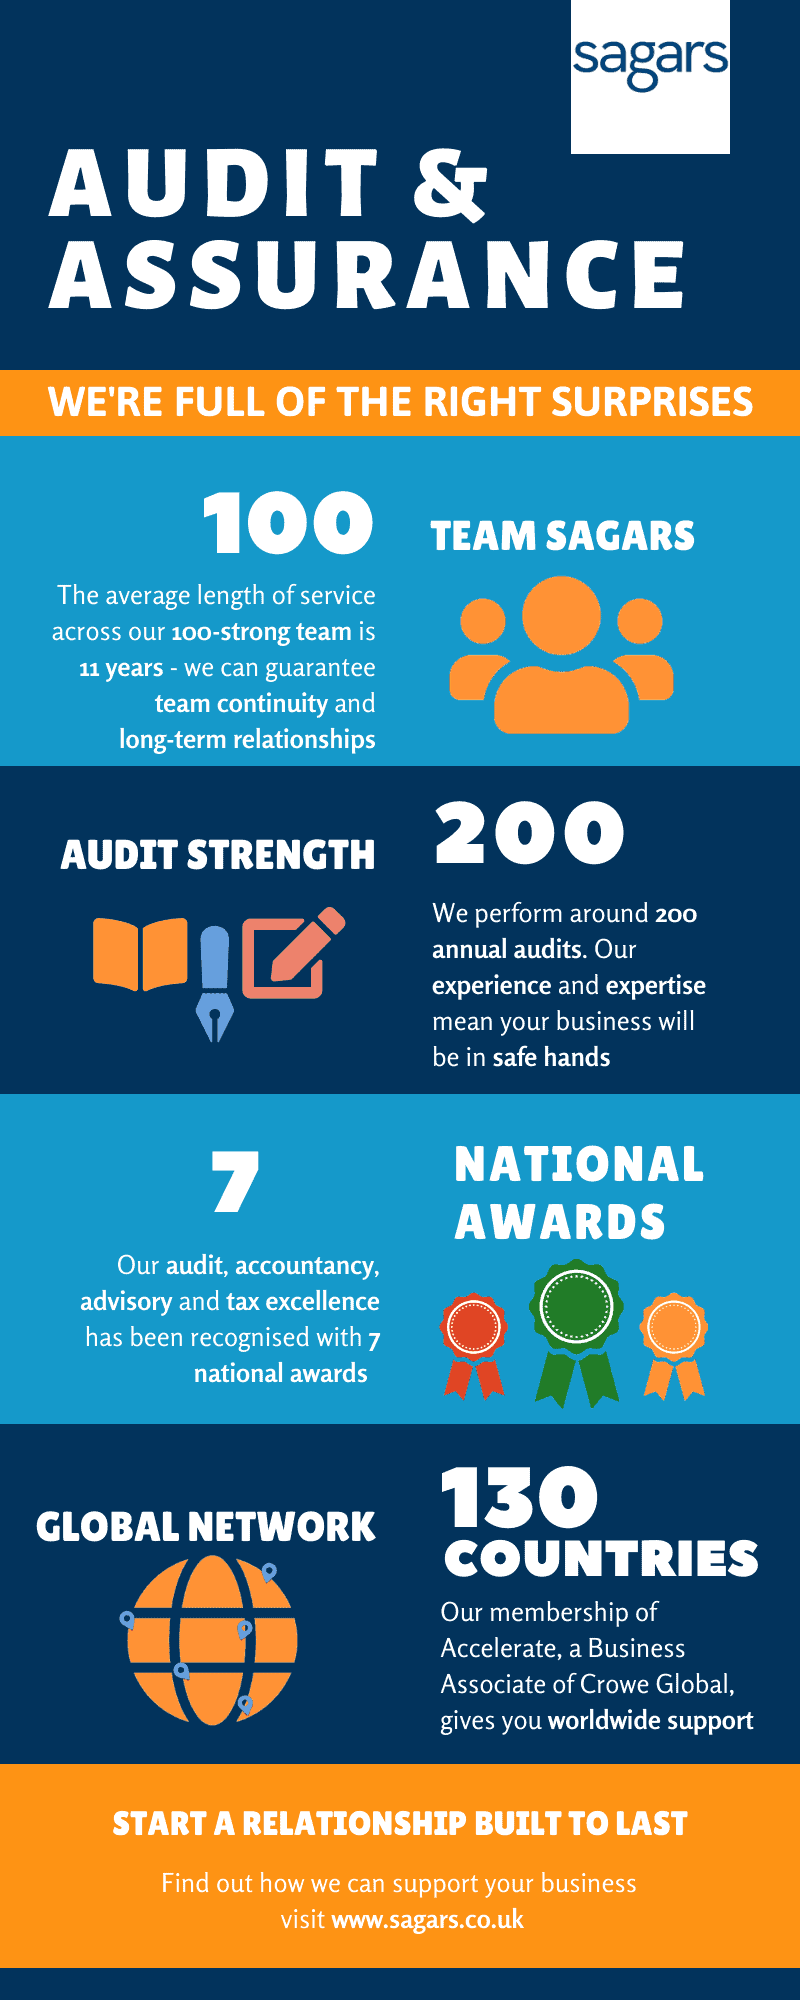 Audit & assurance - we're full of the right surprises